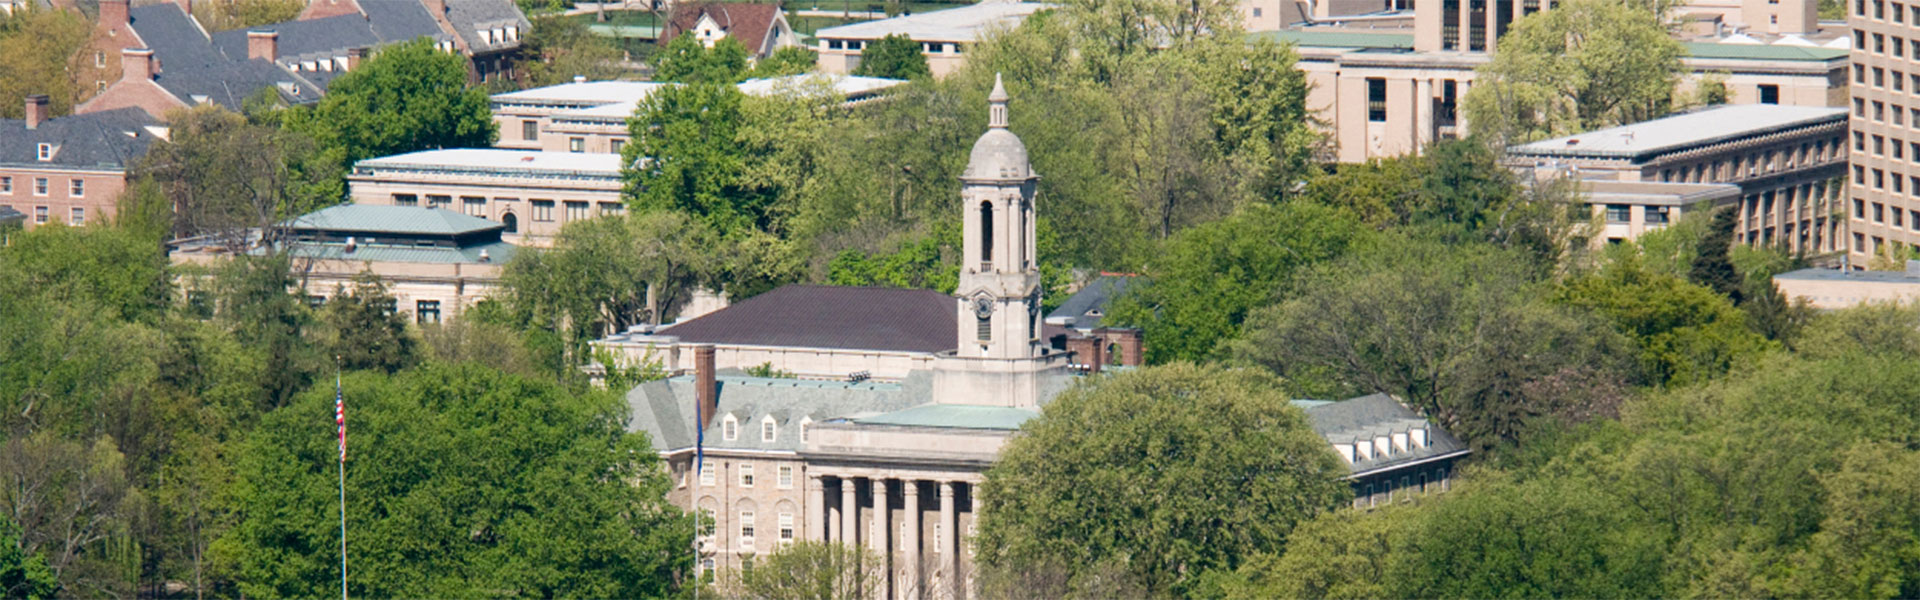 Old Main Aerial View